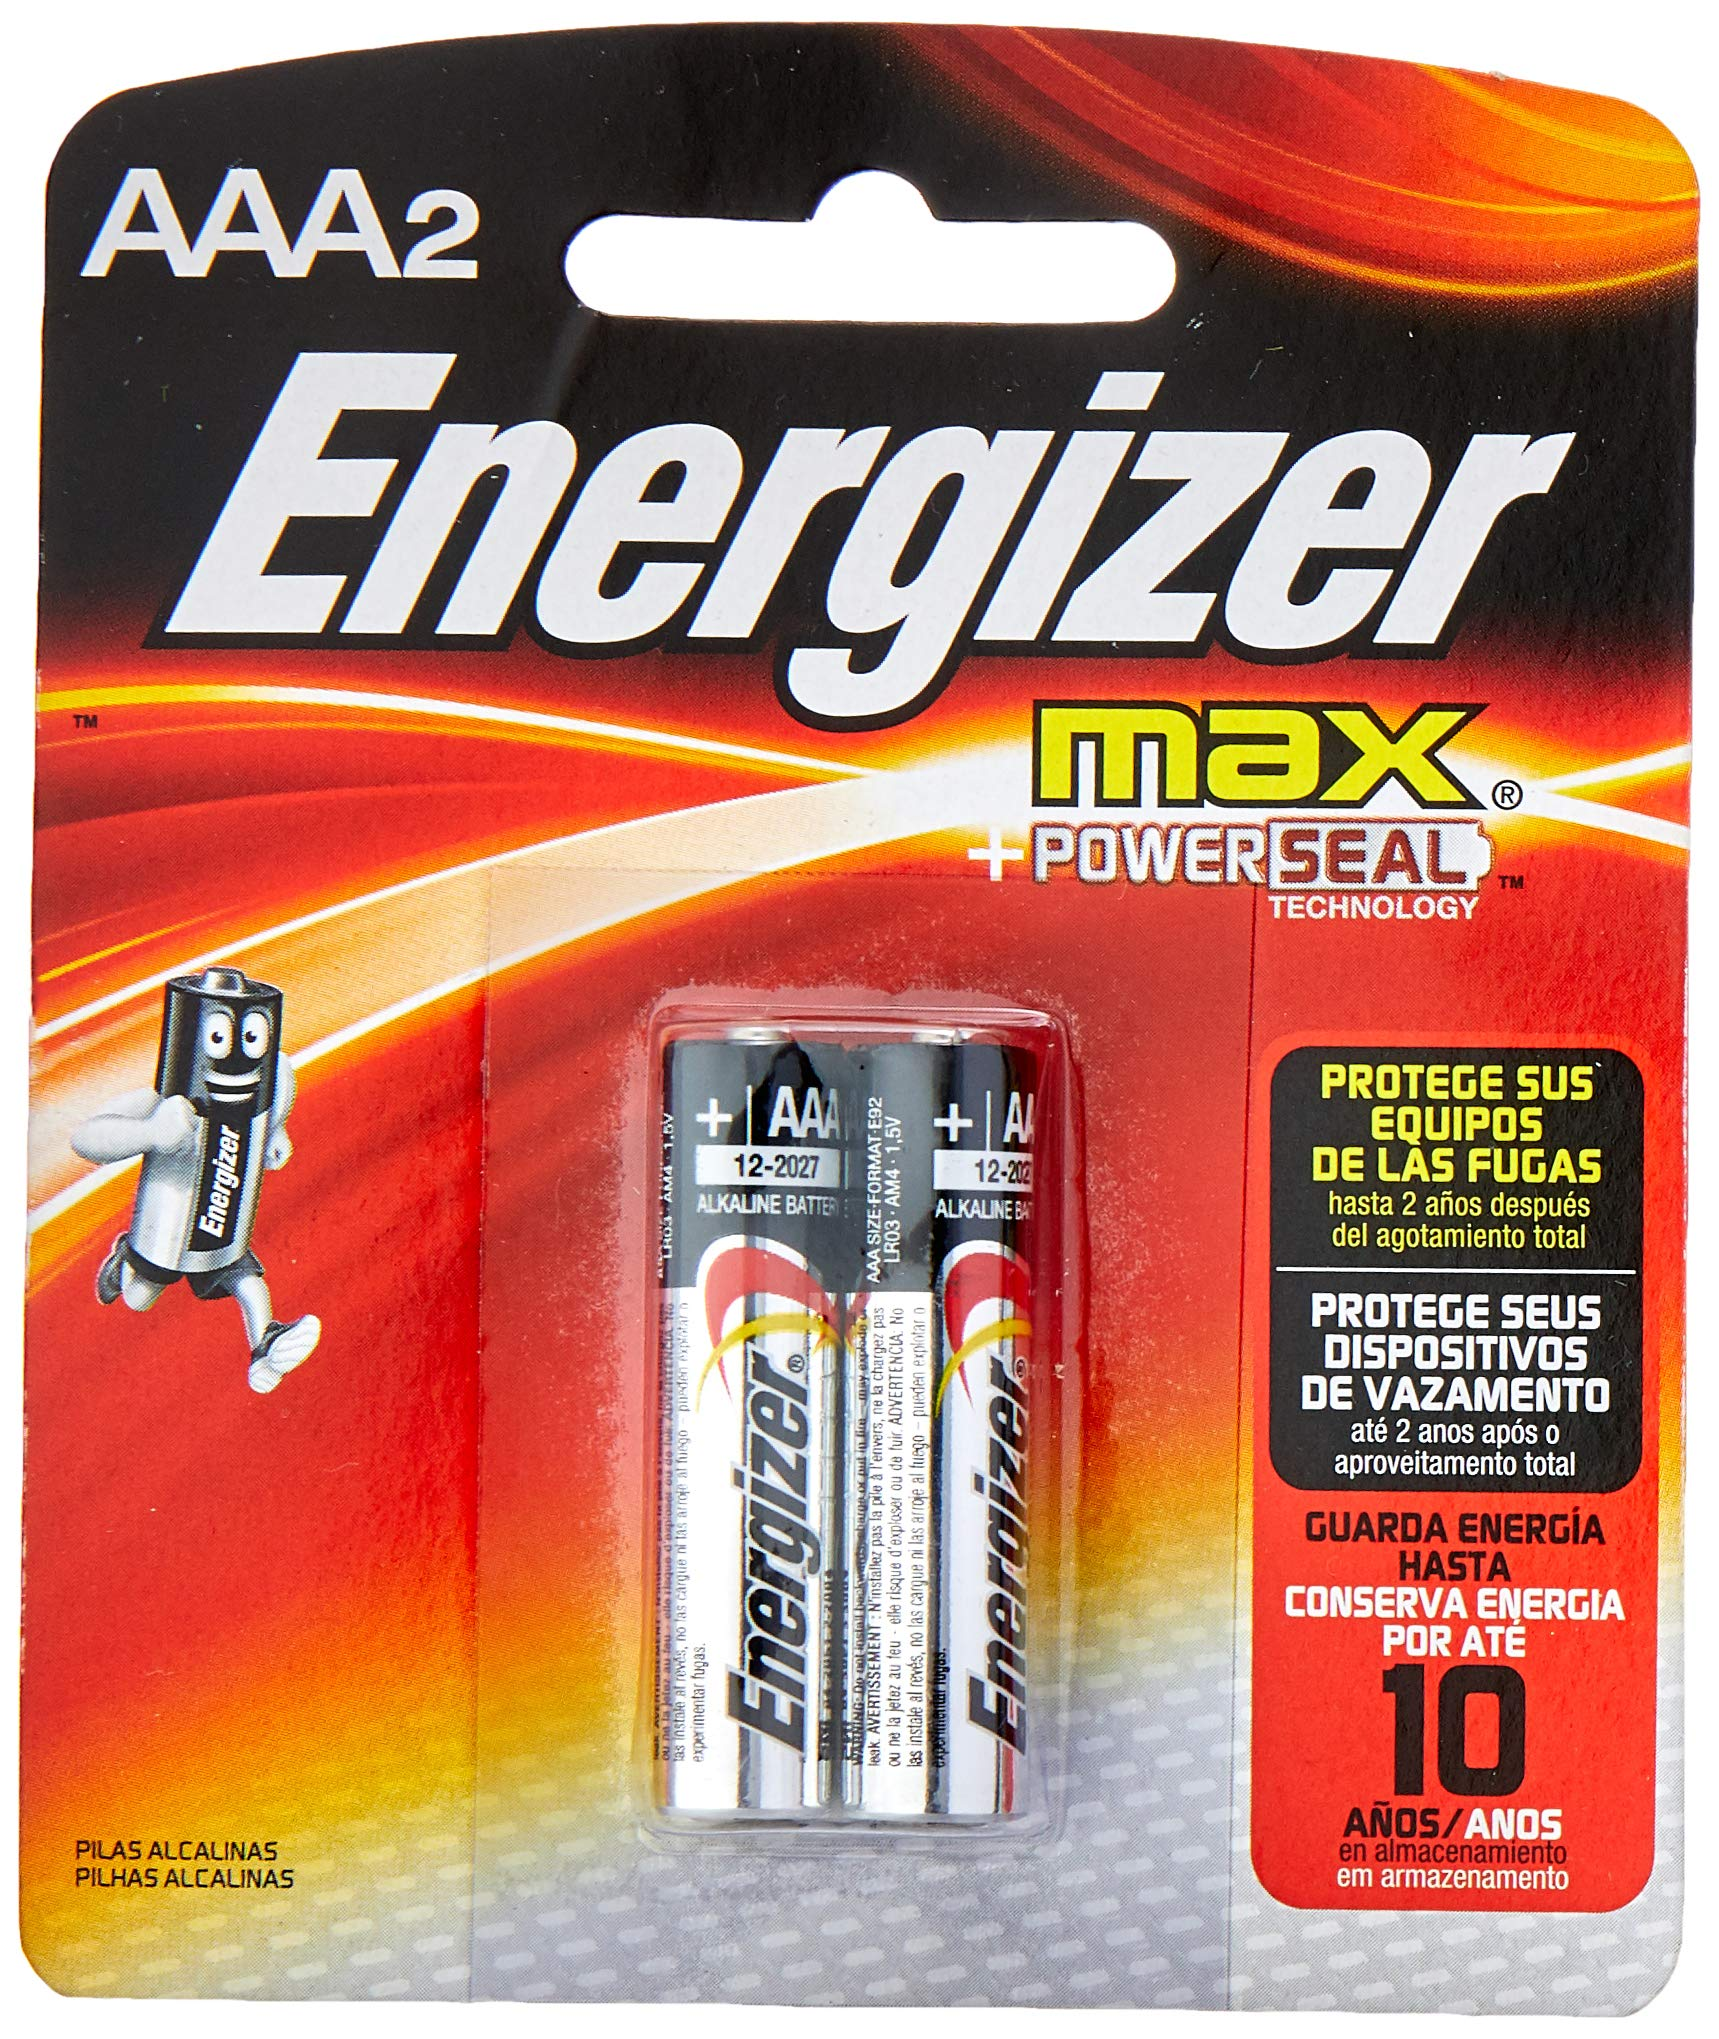 Energizer AAA Max Alkaline E92 Batteries 20 count